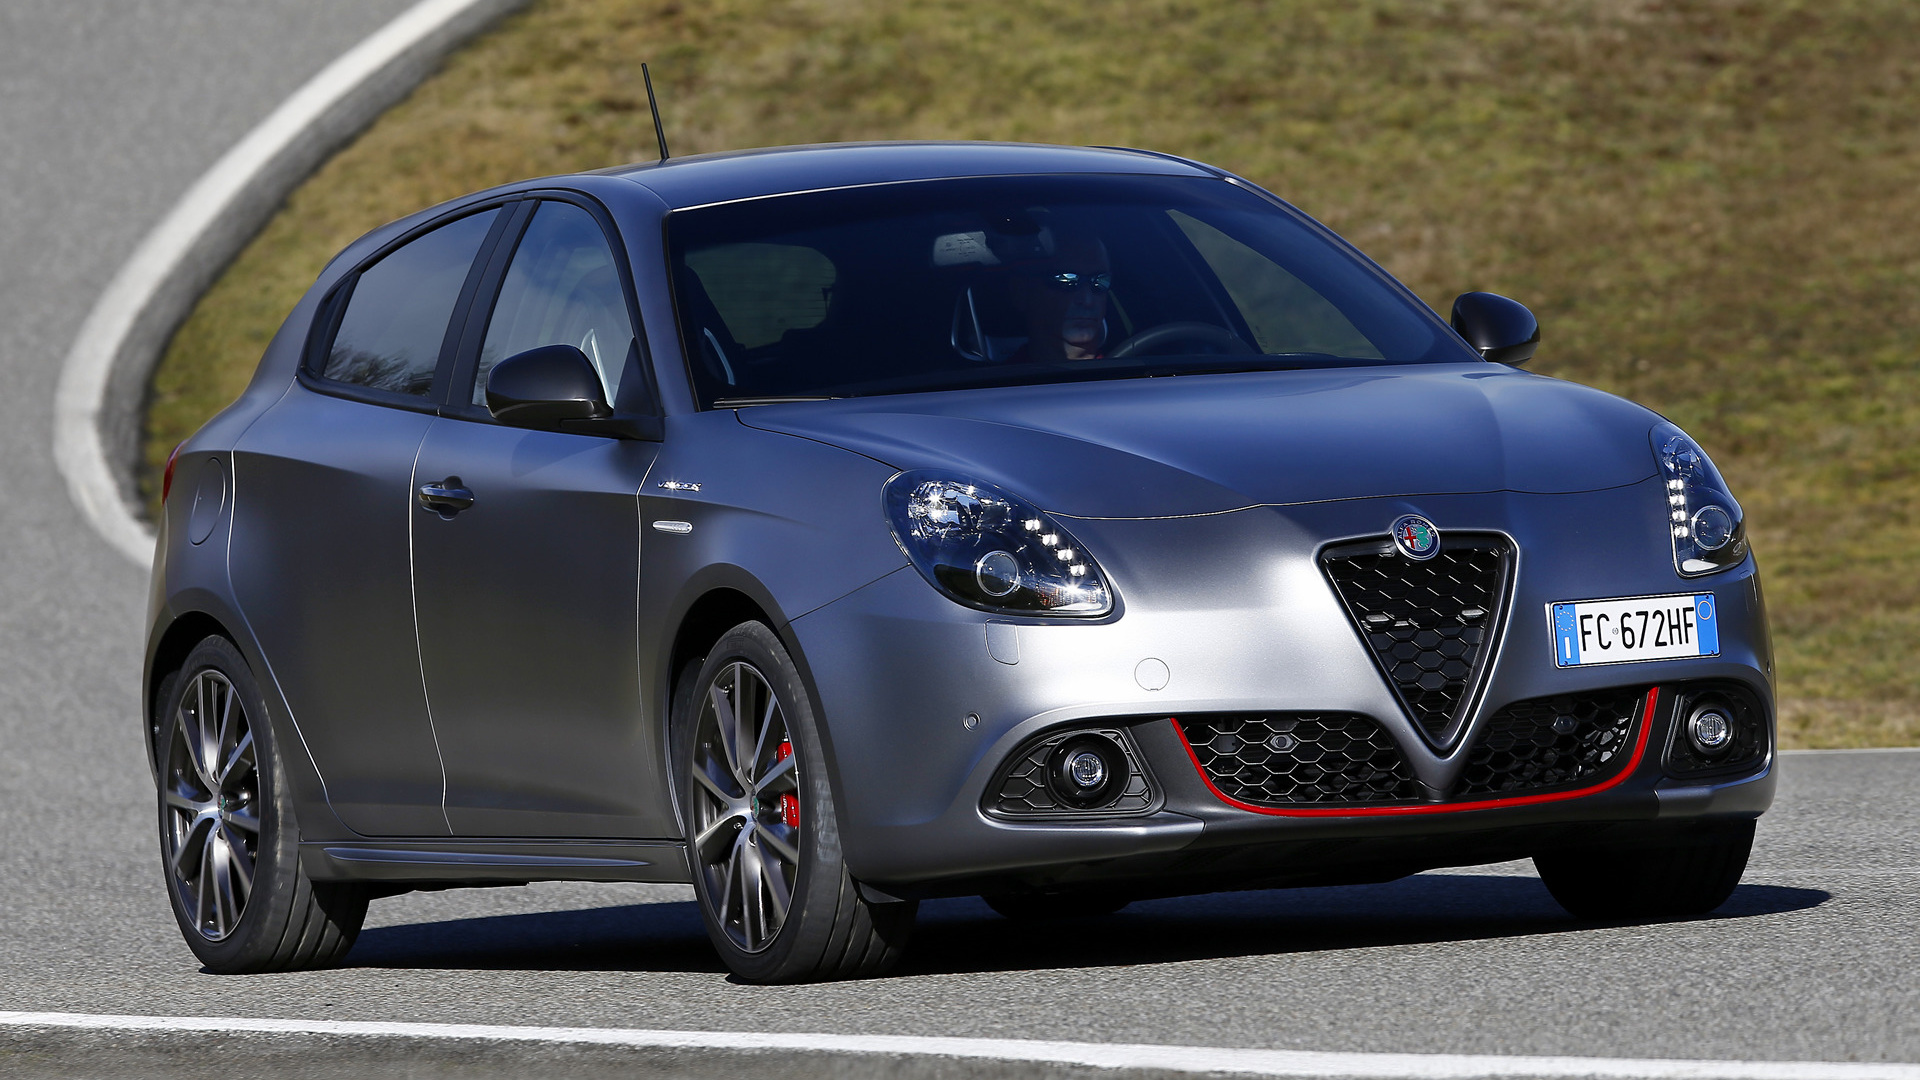 alfa romeo giulietta veloce 2016 wallpapers and hd images car pixel. Black Bedroom Furniture Sets. Home Design Ideas